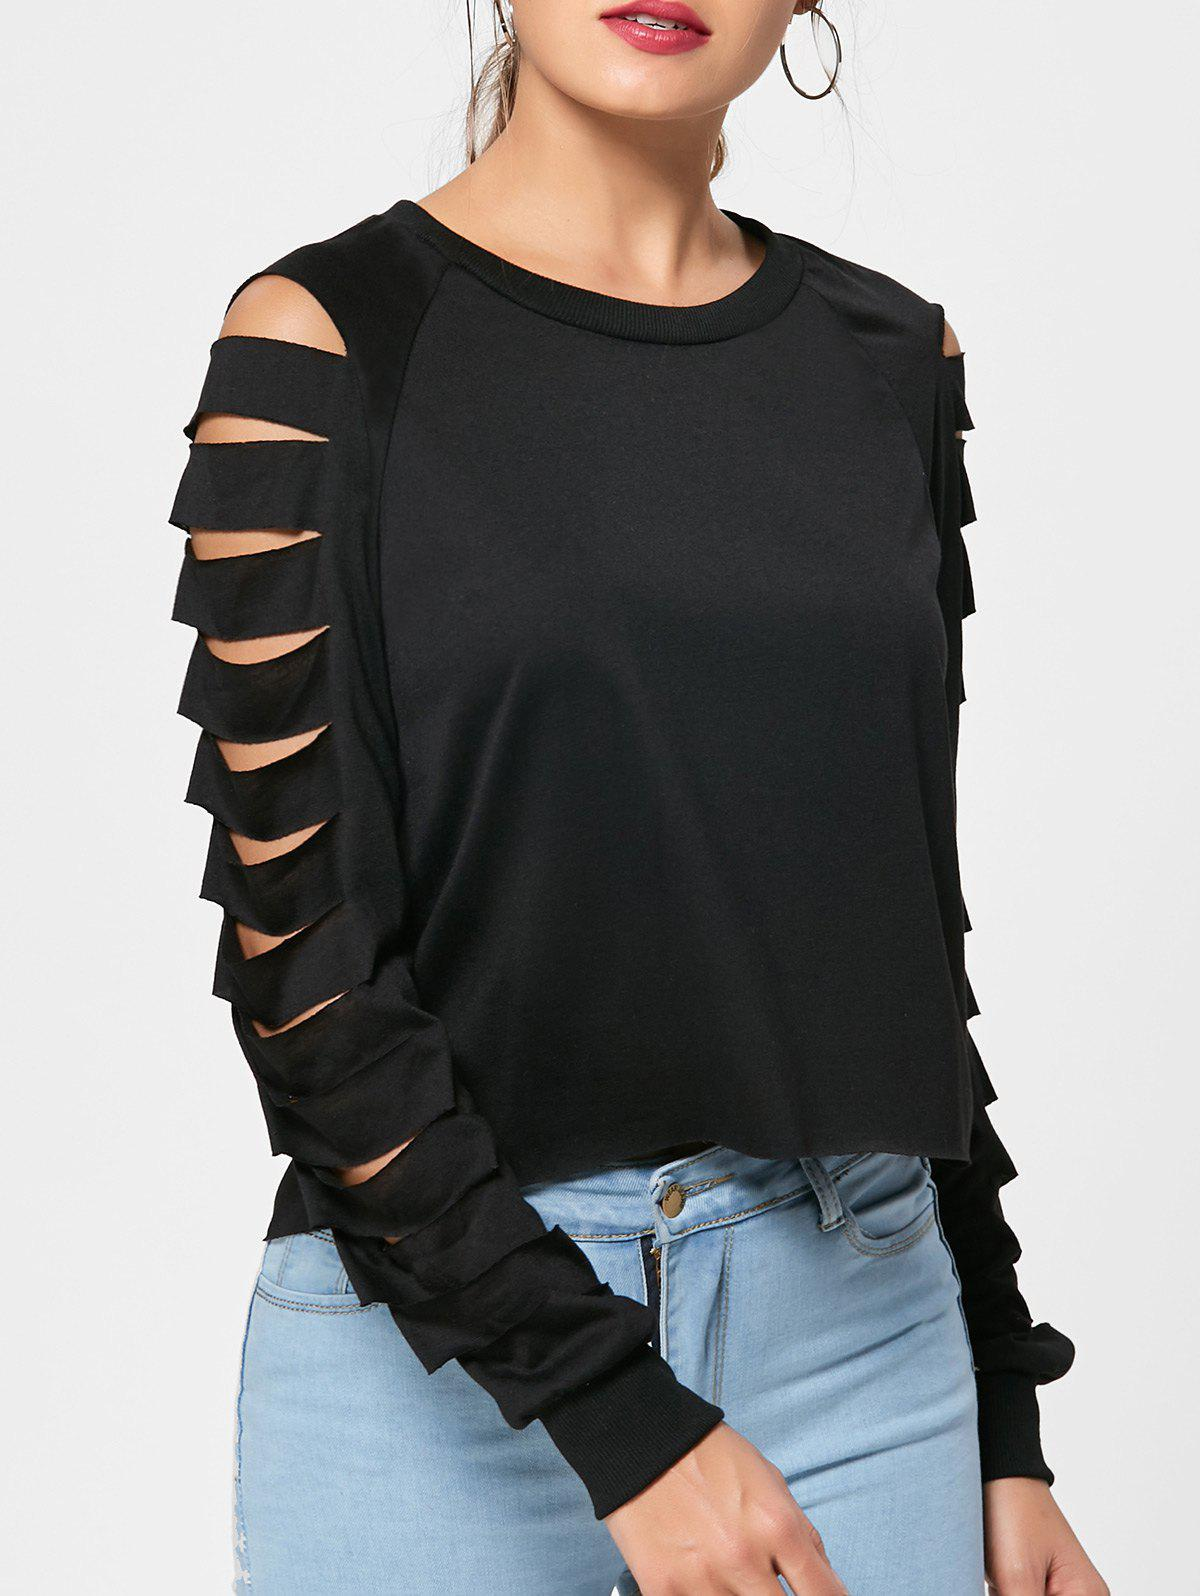 Fashion High Low Hollow Out Long Sleeves Top